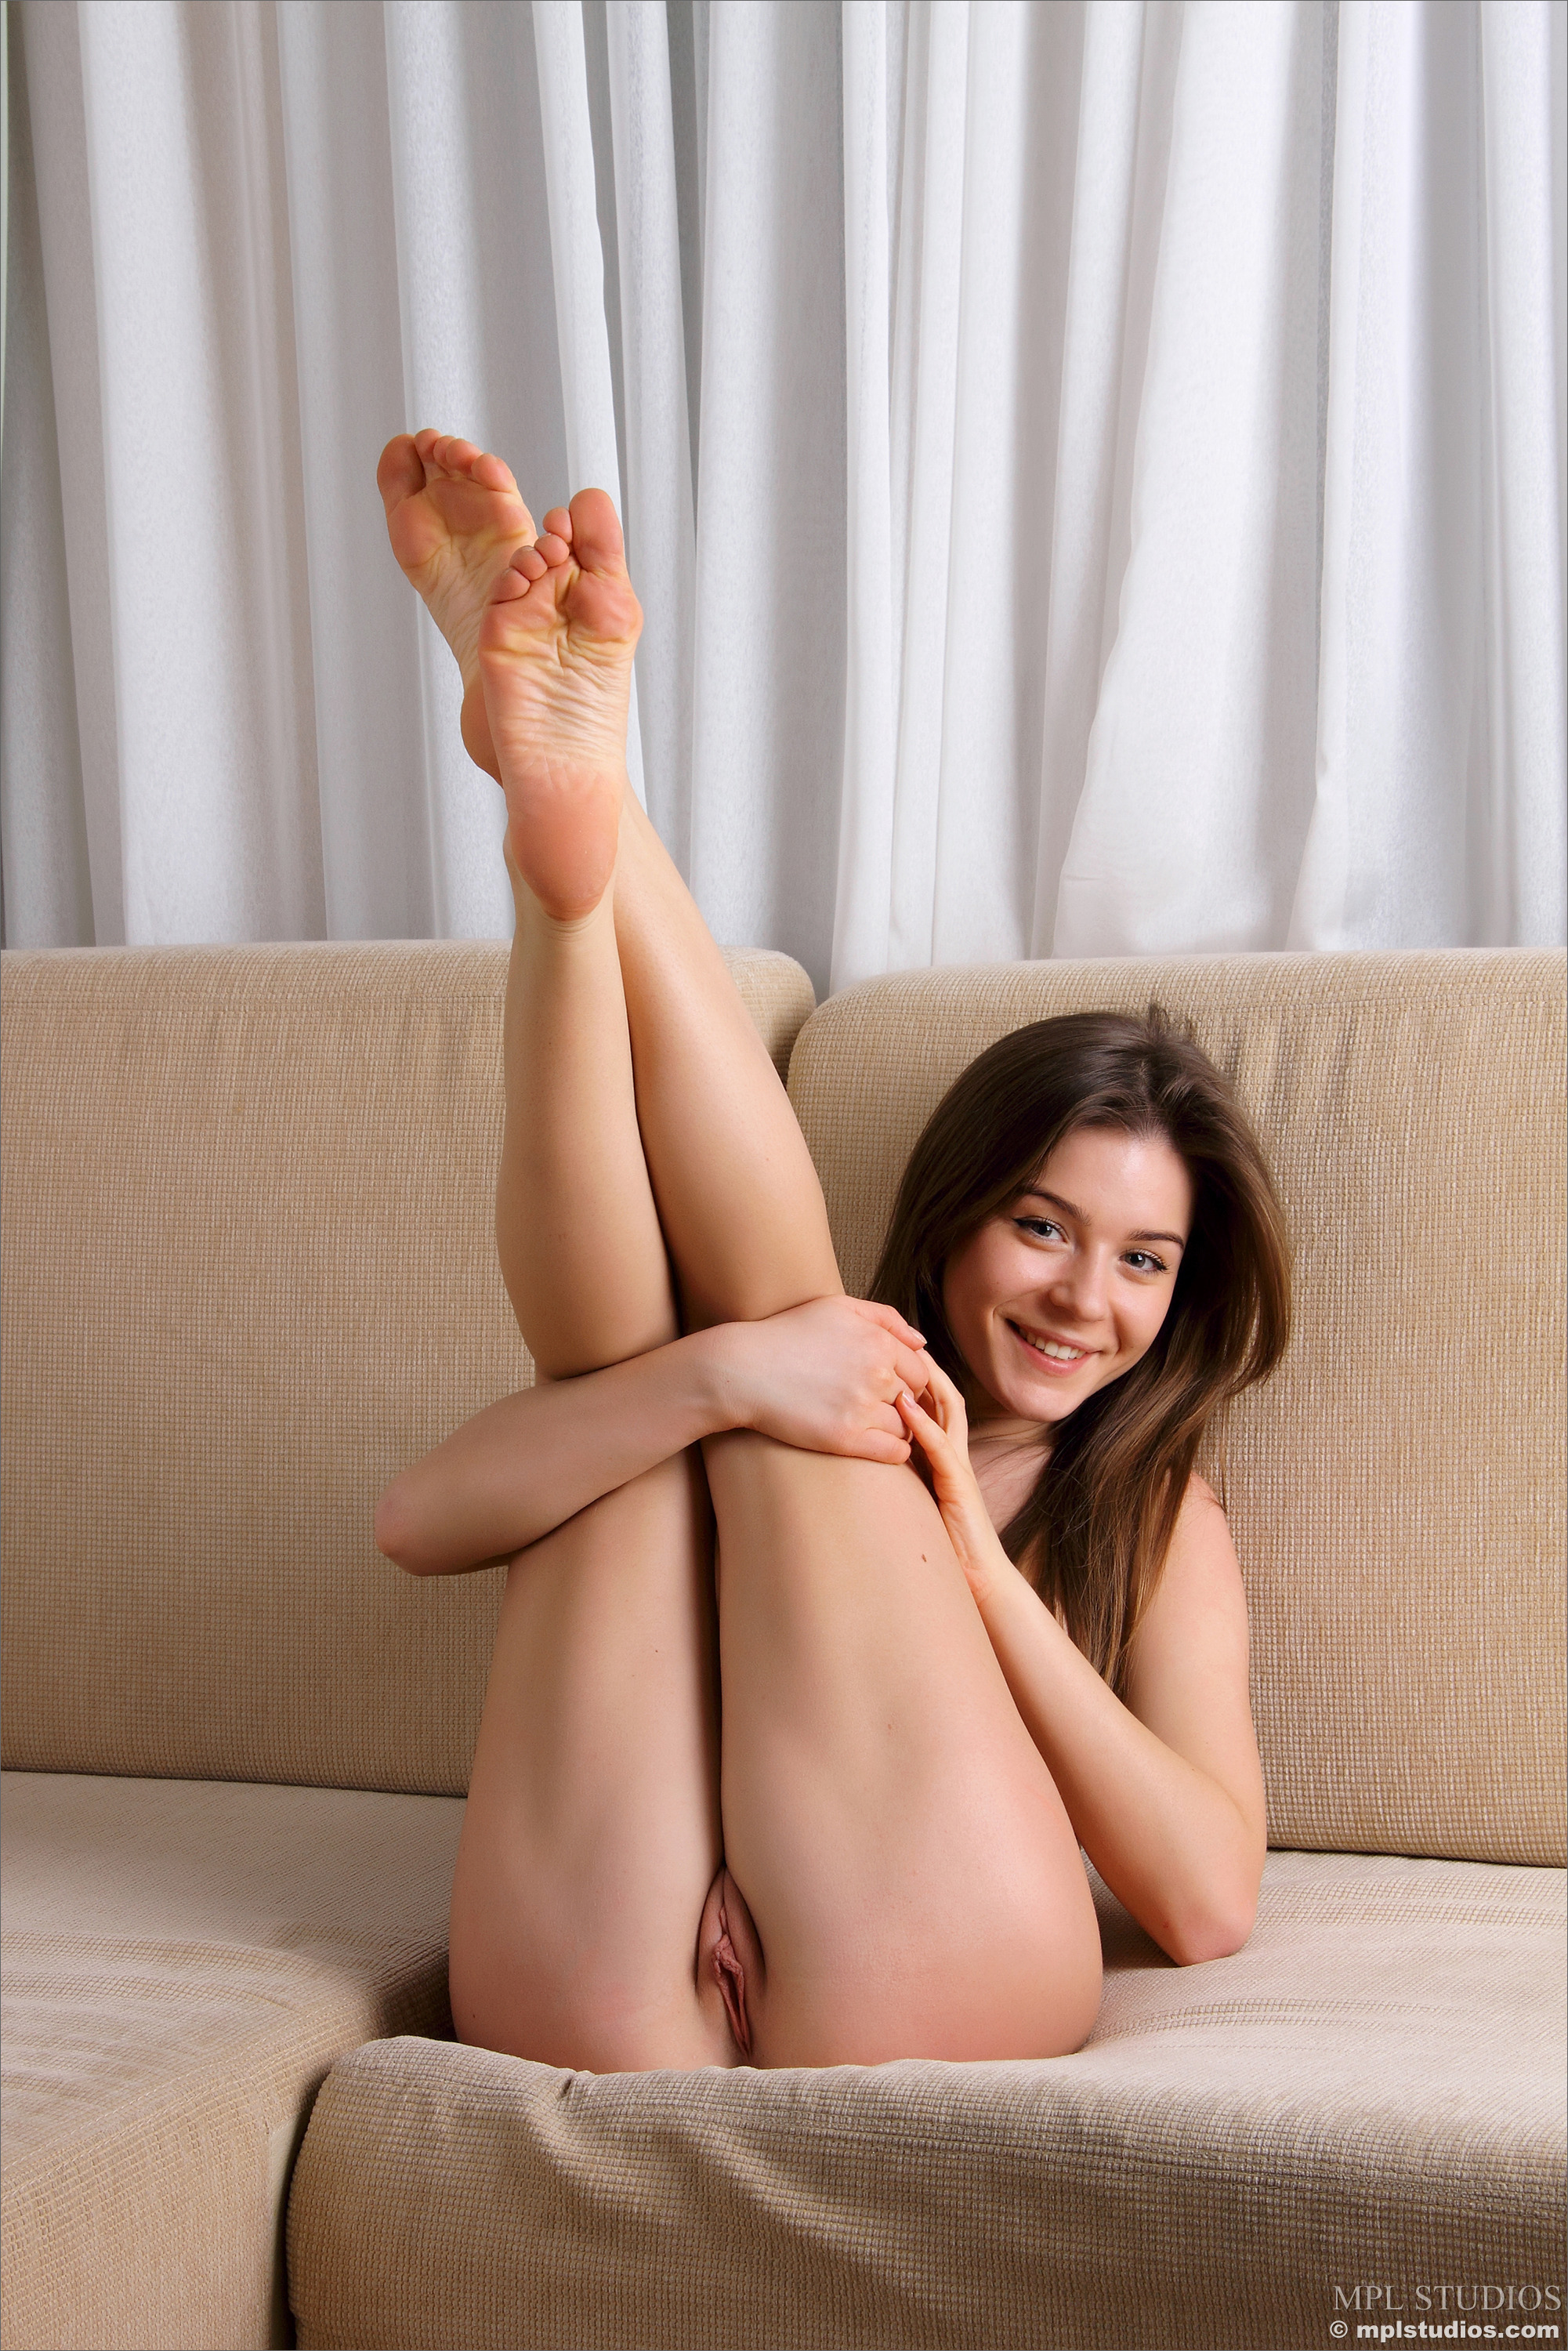 nude-girls-with-legs-up-photo-mix-vol3-61